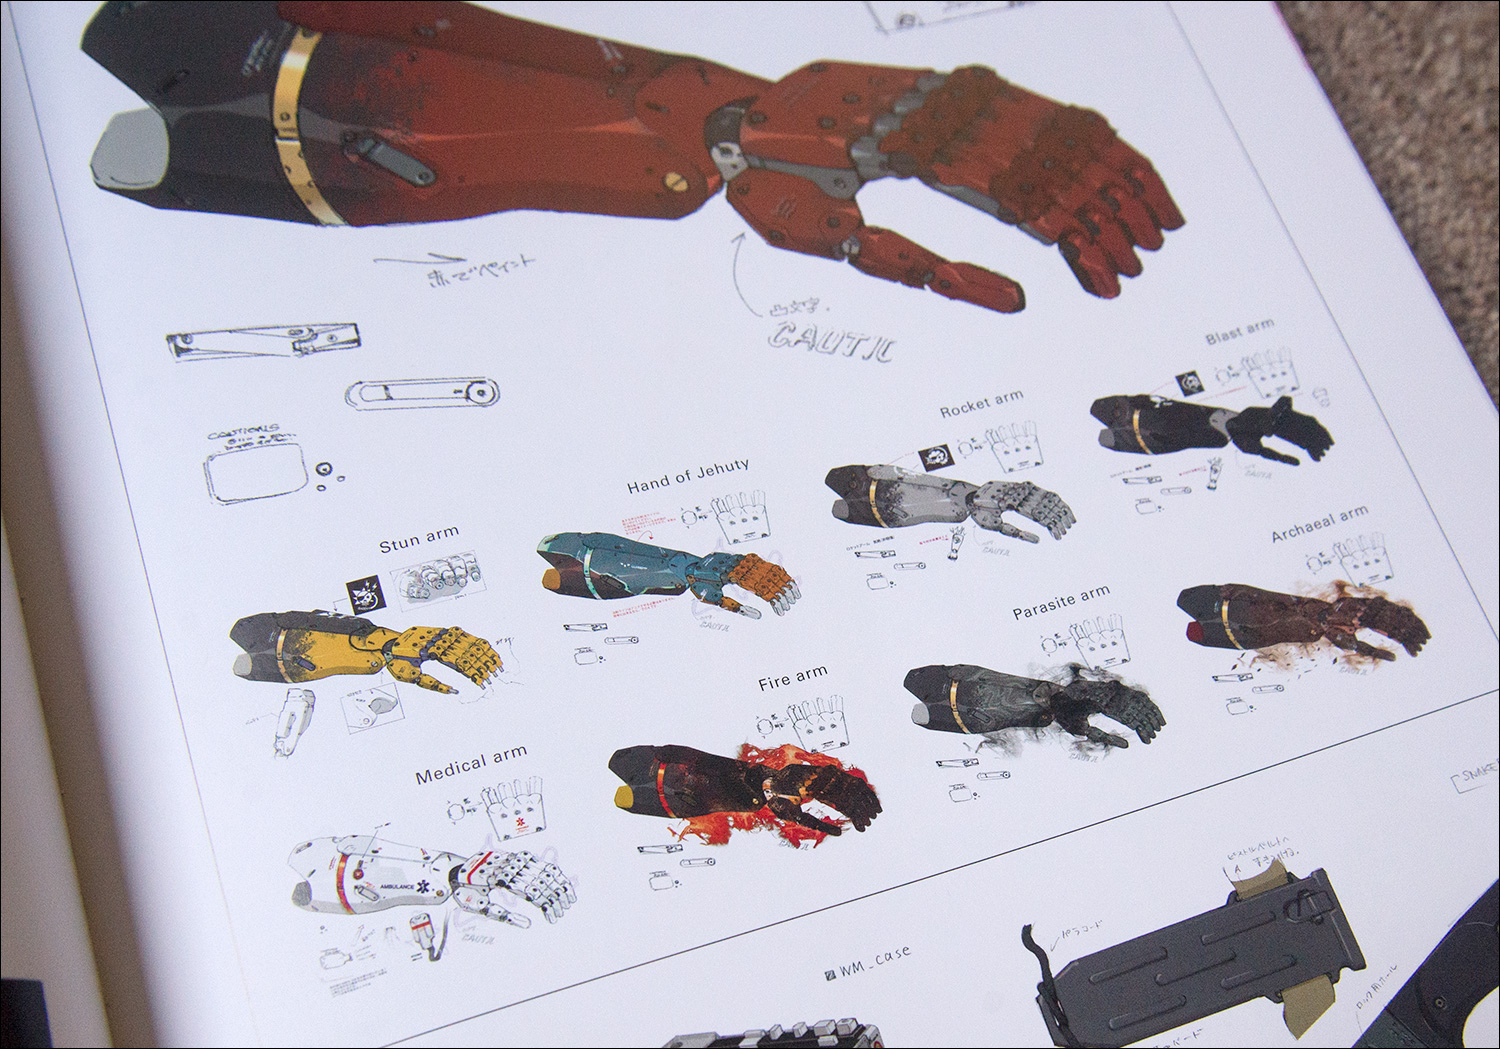 the-art-of-metal-gear-solid-v-limited-edition-bionic-arms